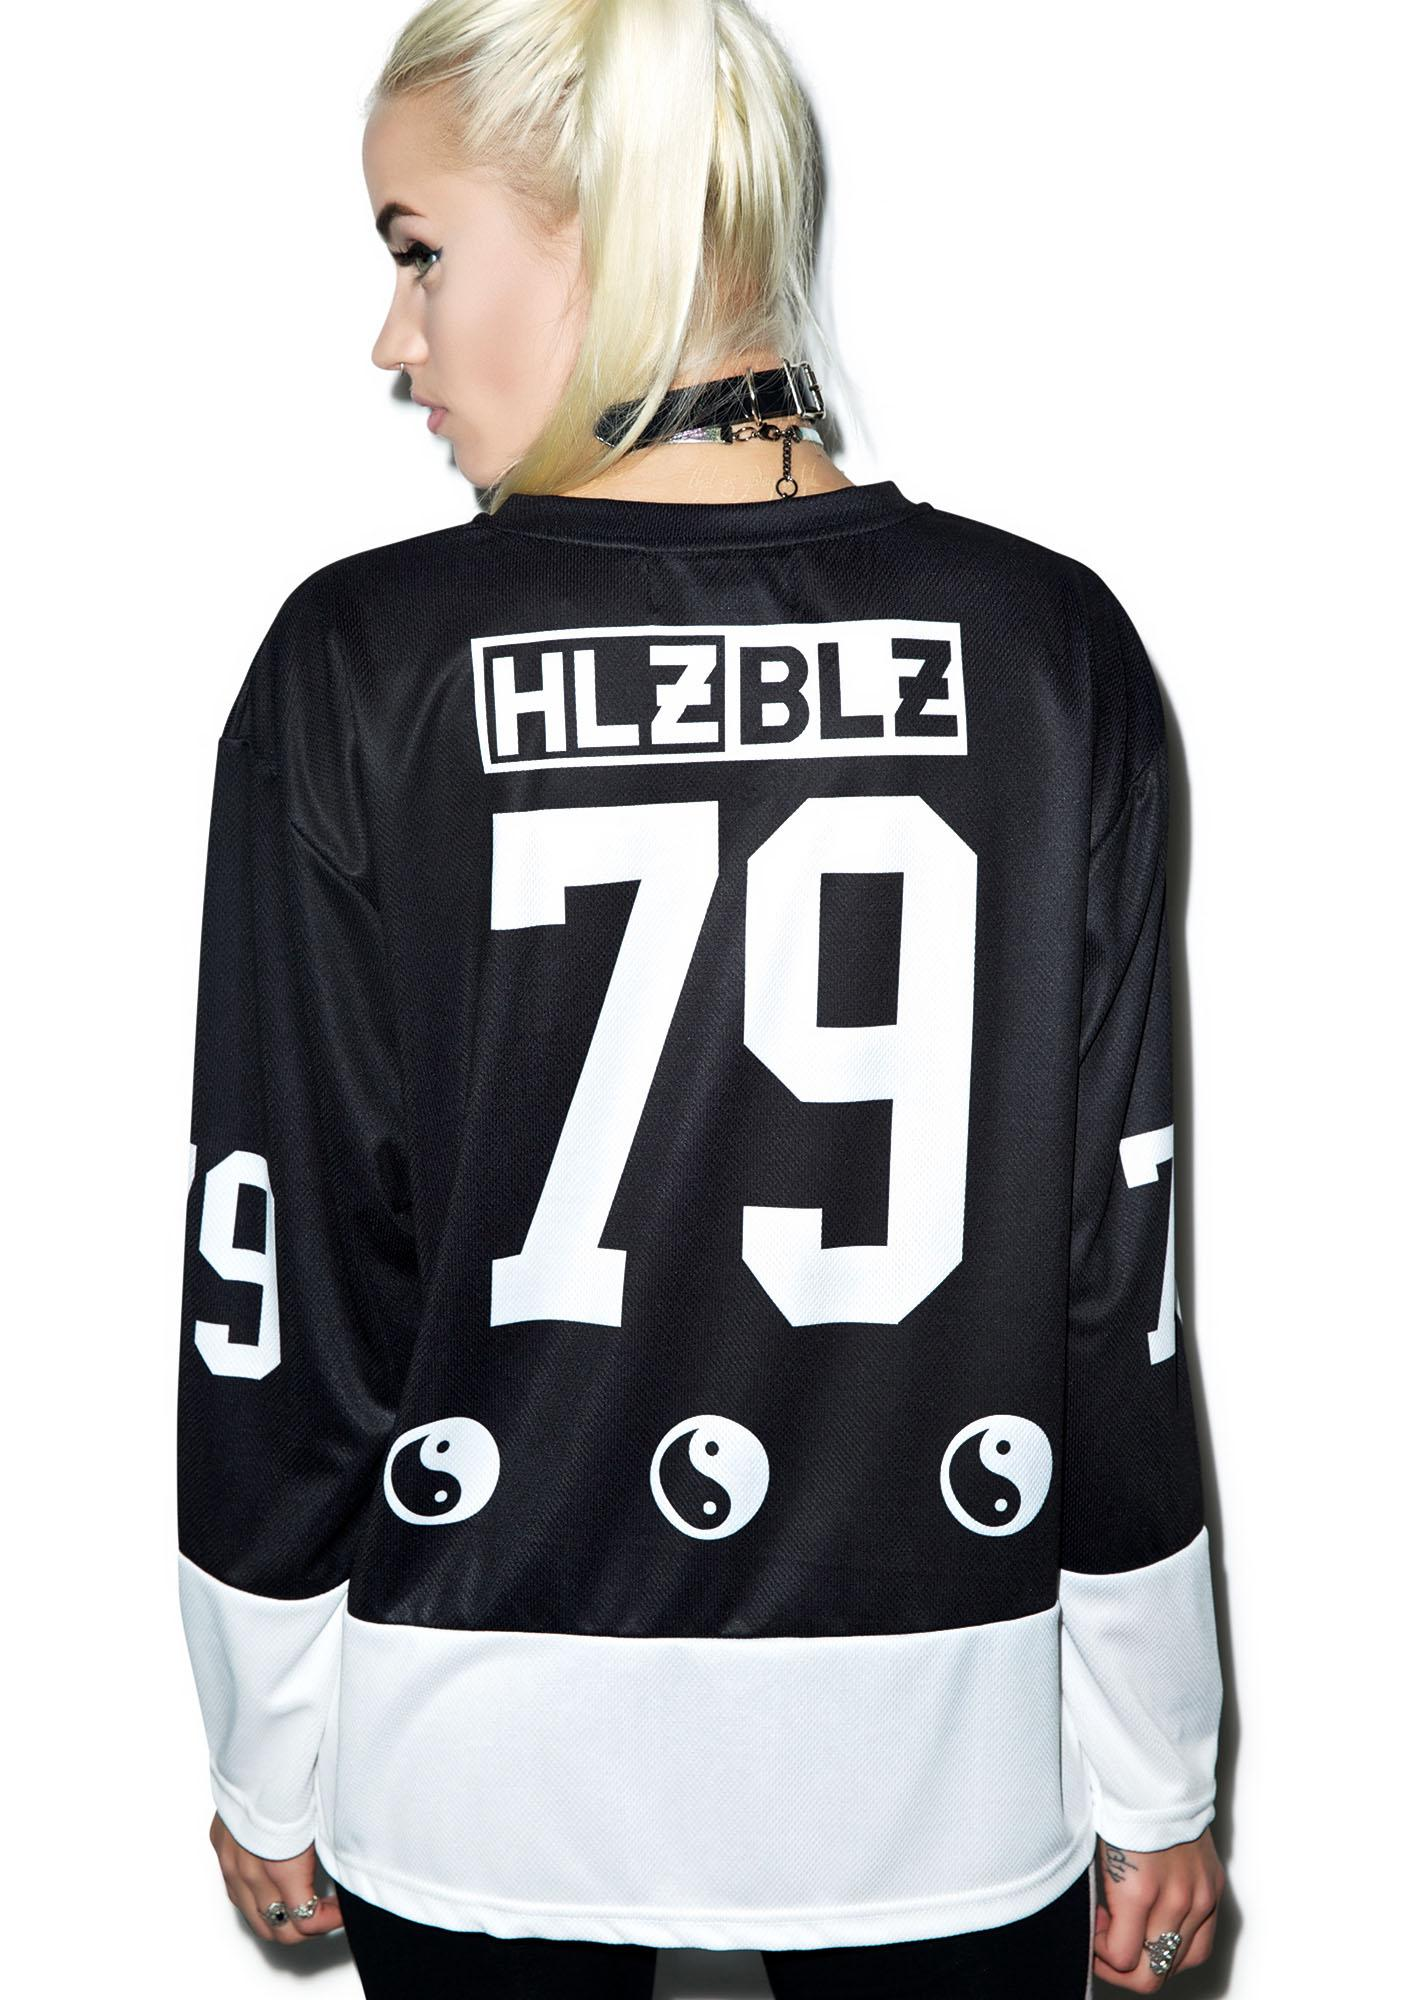 HLZBLZ Lucky Hockey Jersey